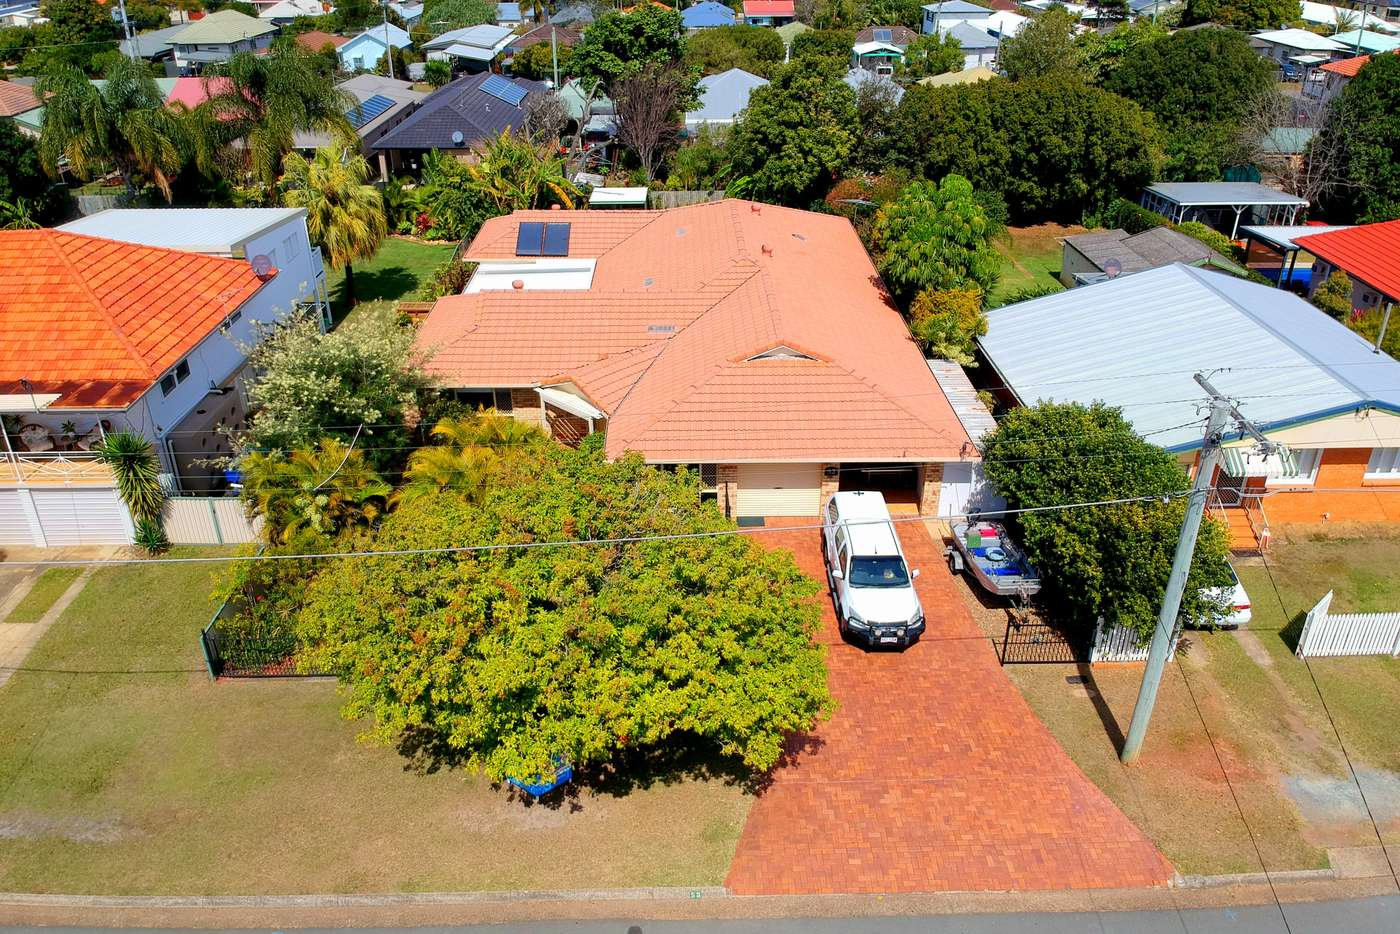 Main view of Homely house listing, 53 Albert St, Margate QLD 4019